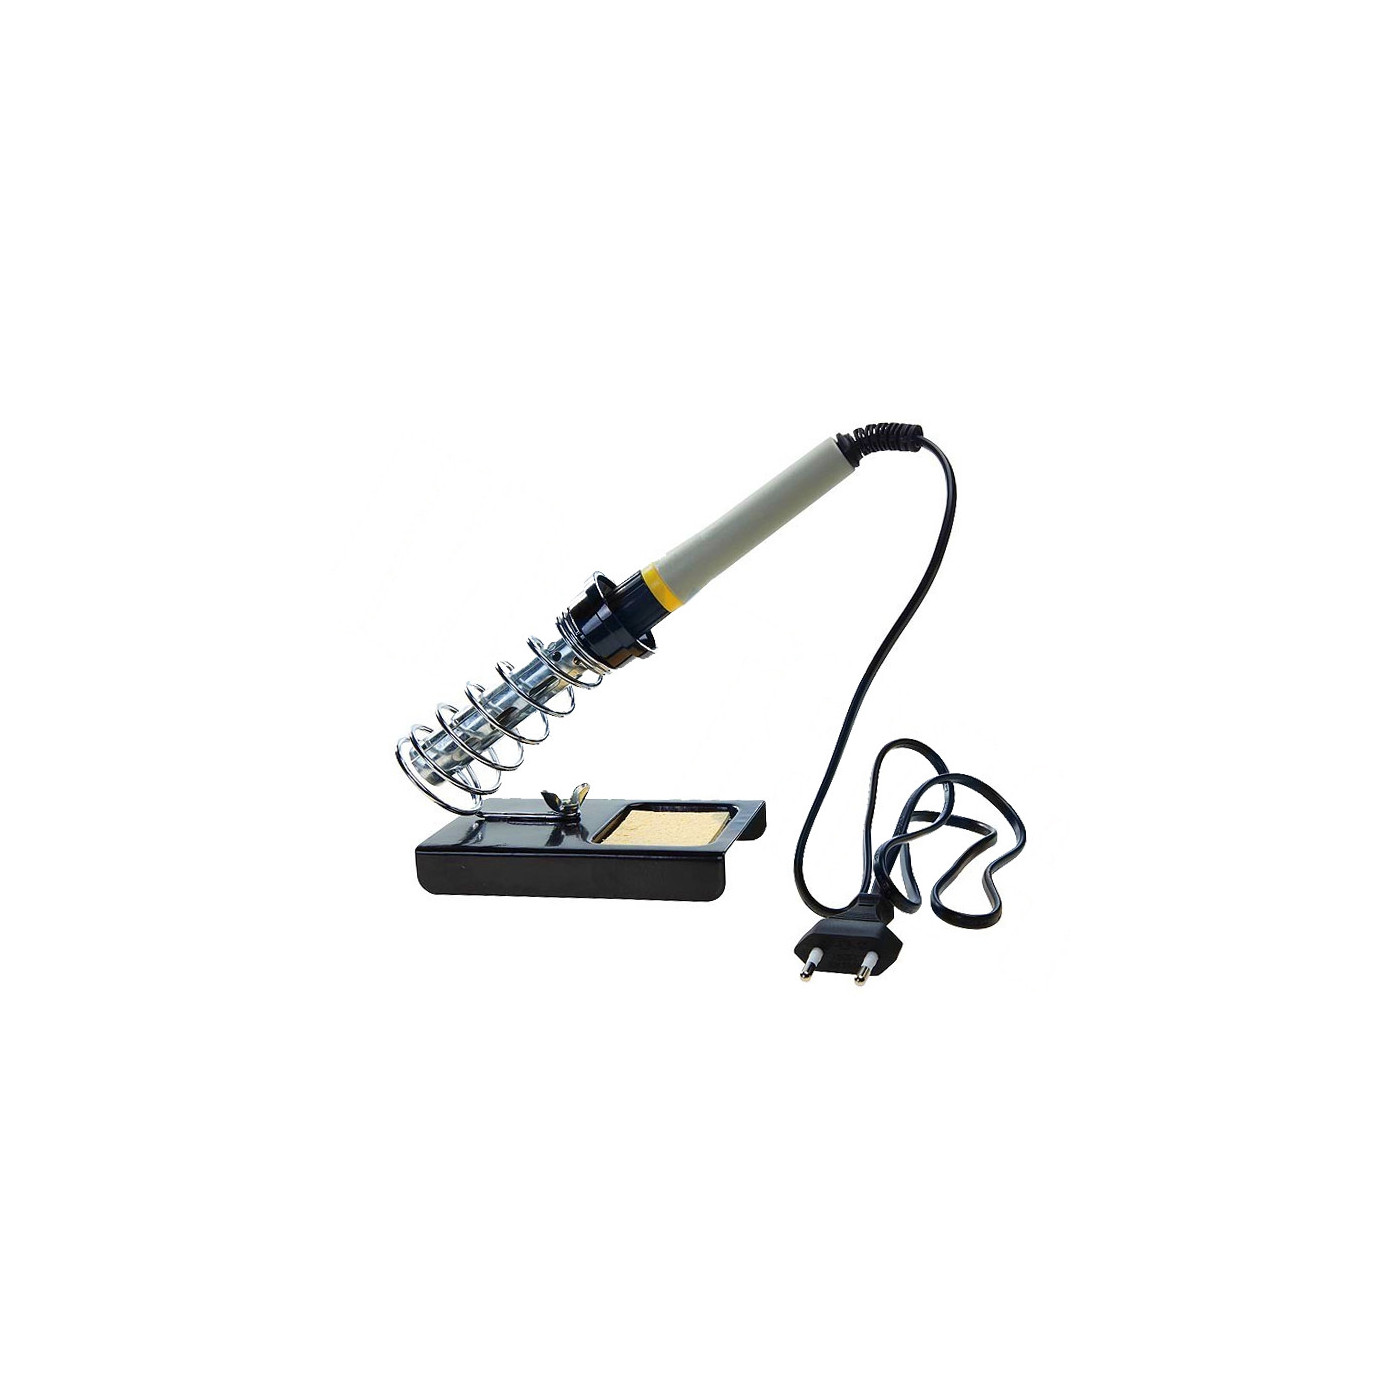 Basic soldering iron (30 W, 1.2 meters cable)